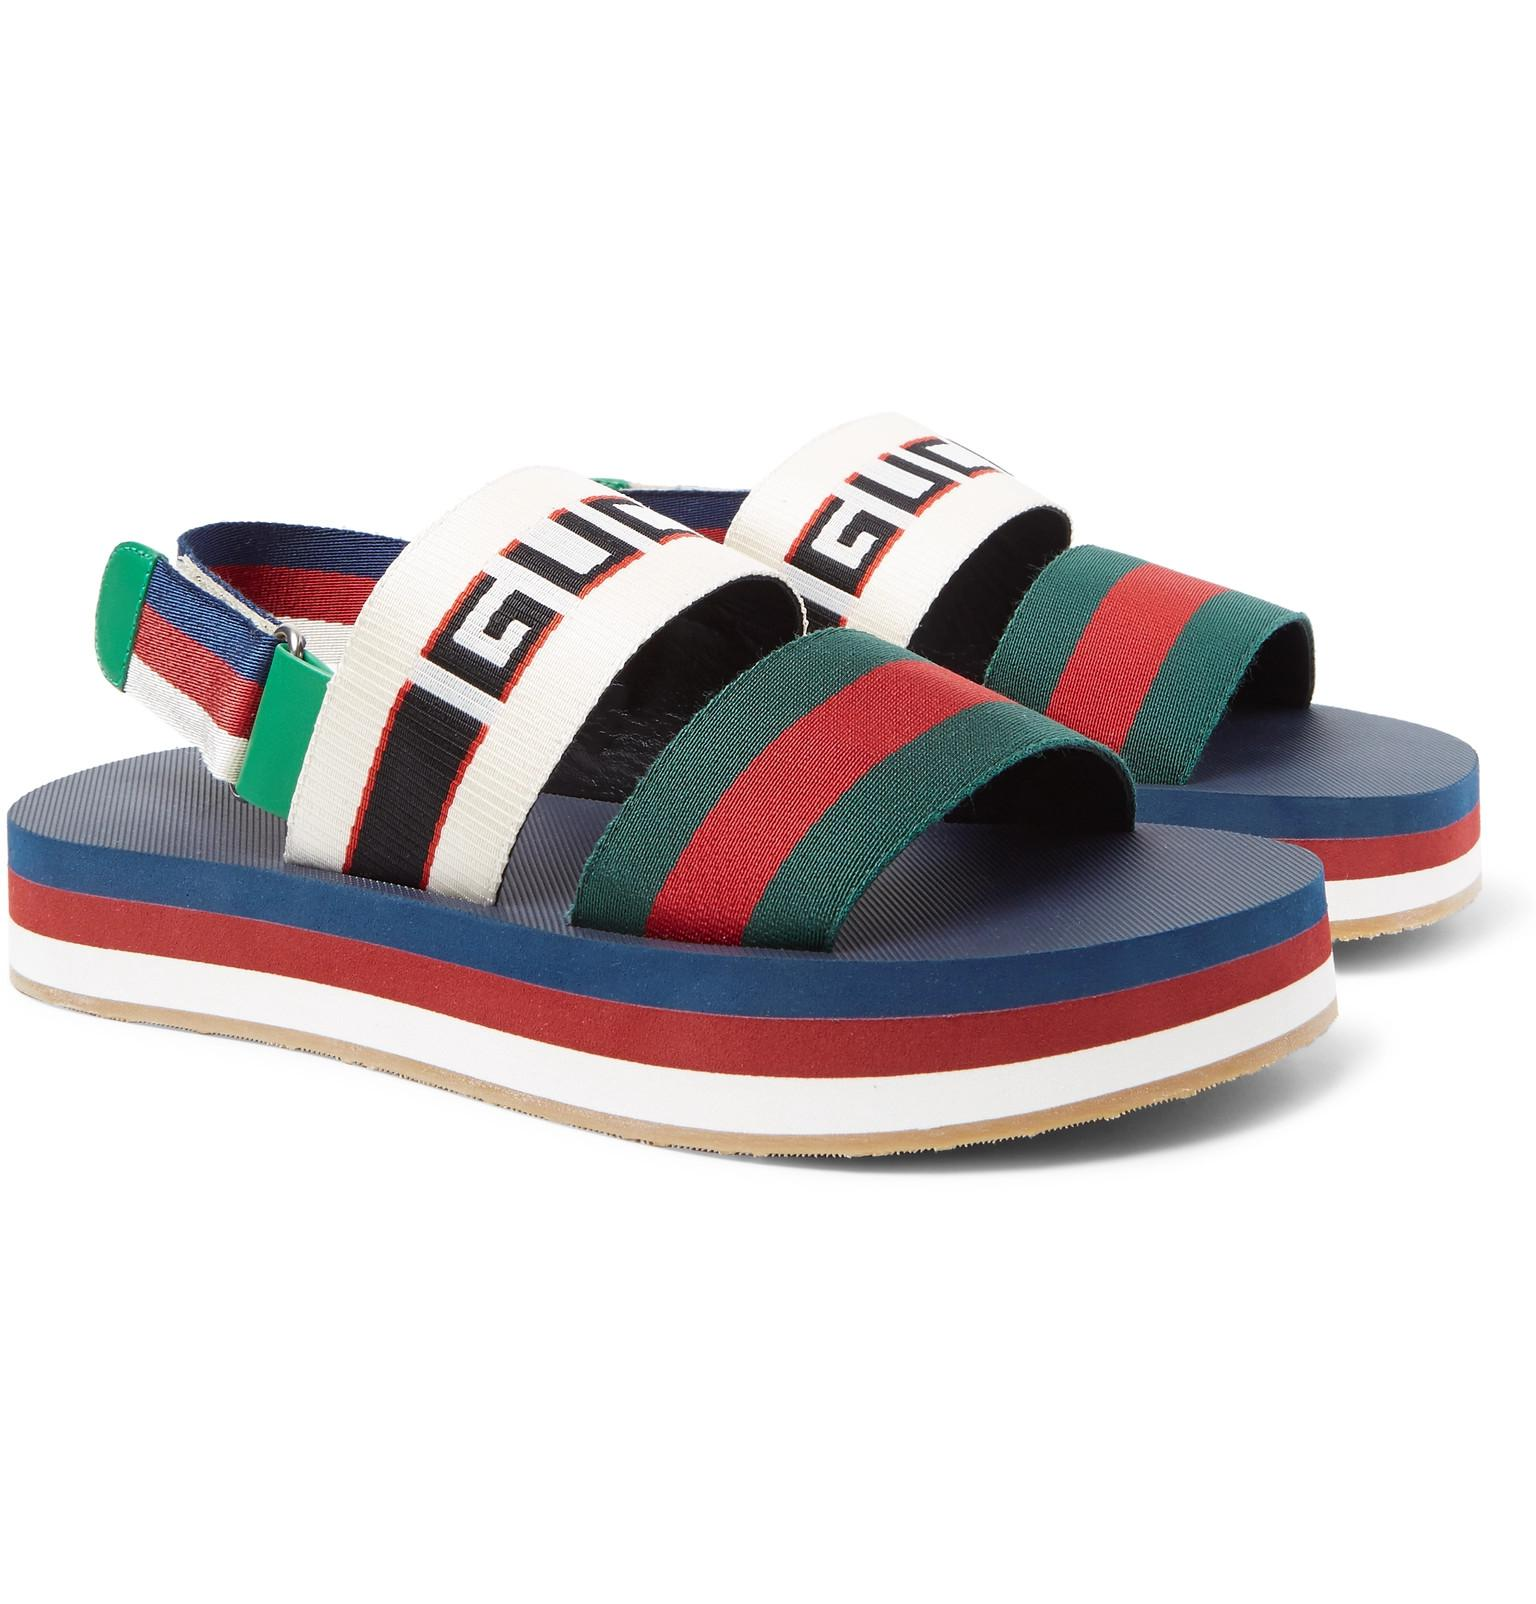 ee9128472bf3 Gucci - Blue Webbing-trimmed Rubber Sandals for Men - Lyst. View fullscreen